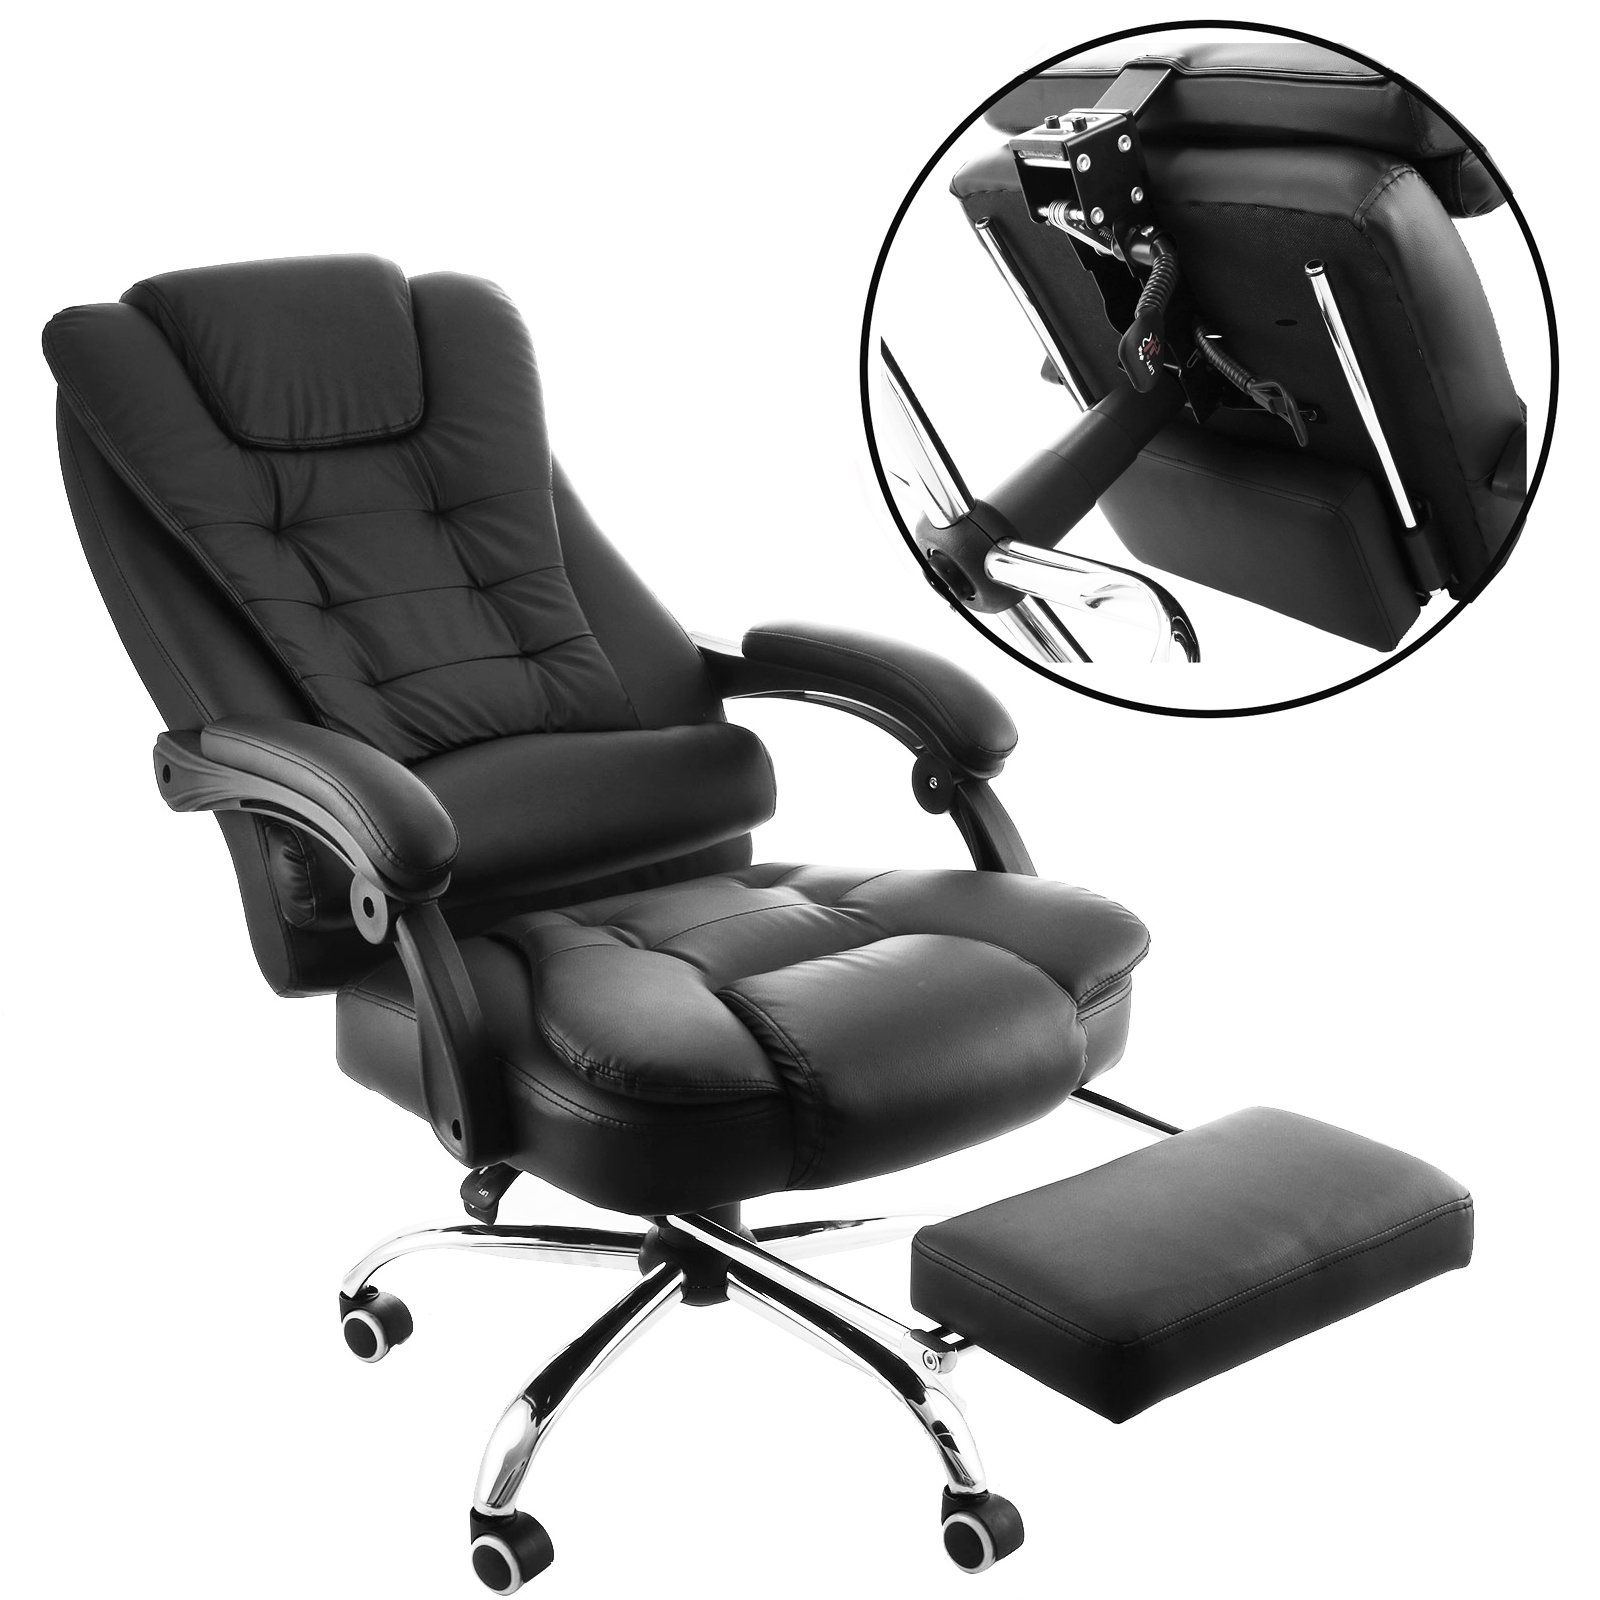 computer from chairs leather armchair chair executive in recliner furniture adjustable modern item office reclining home